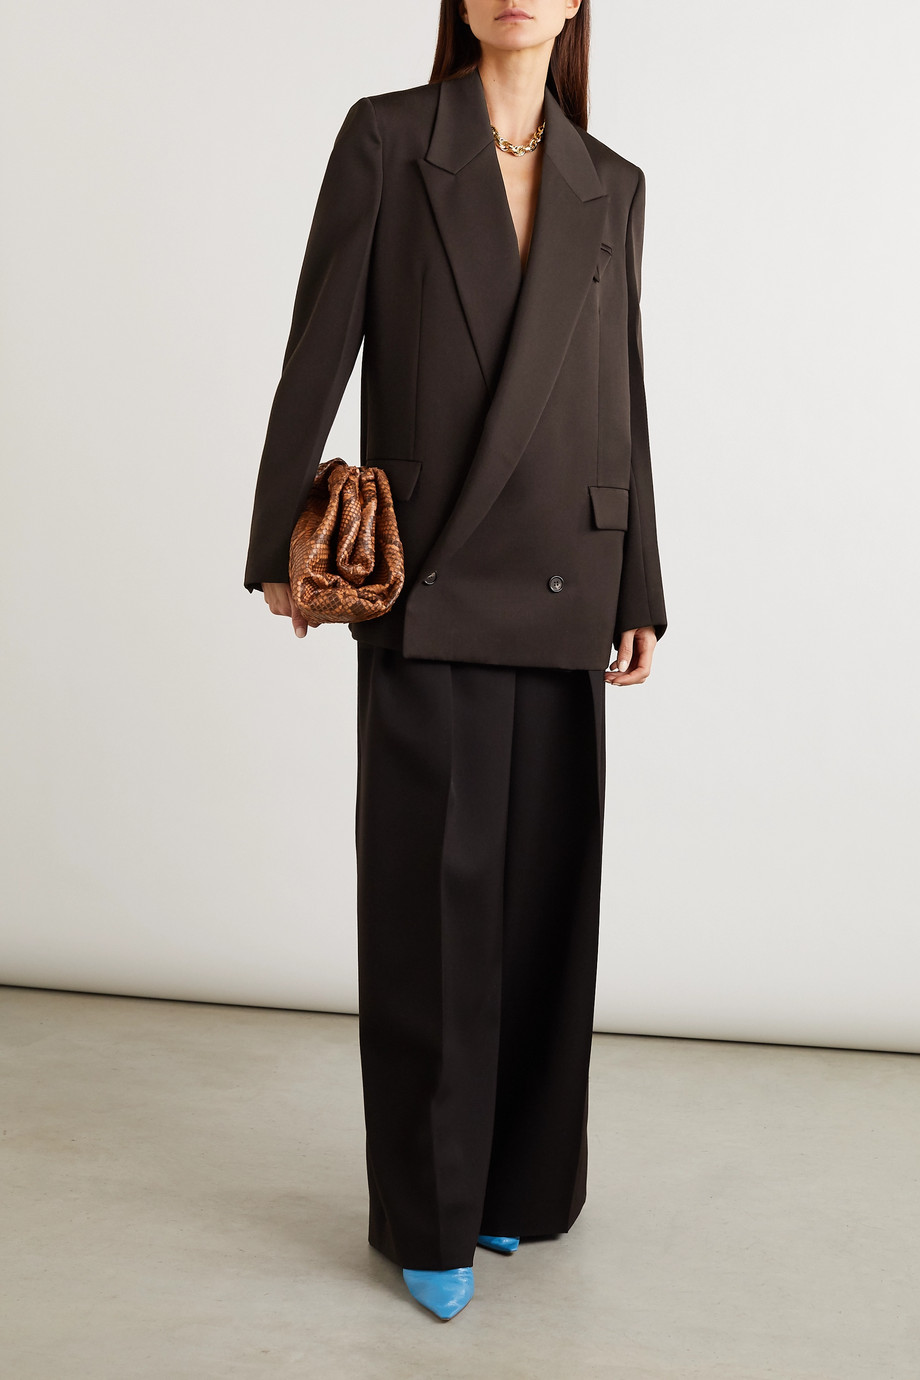 Bottega Veneta Oversized double-breasted grain de poudre blazer